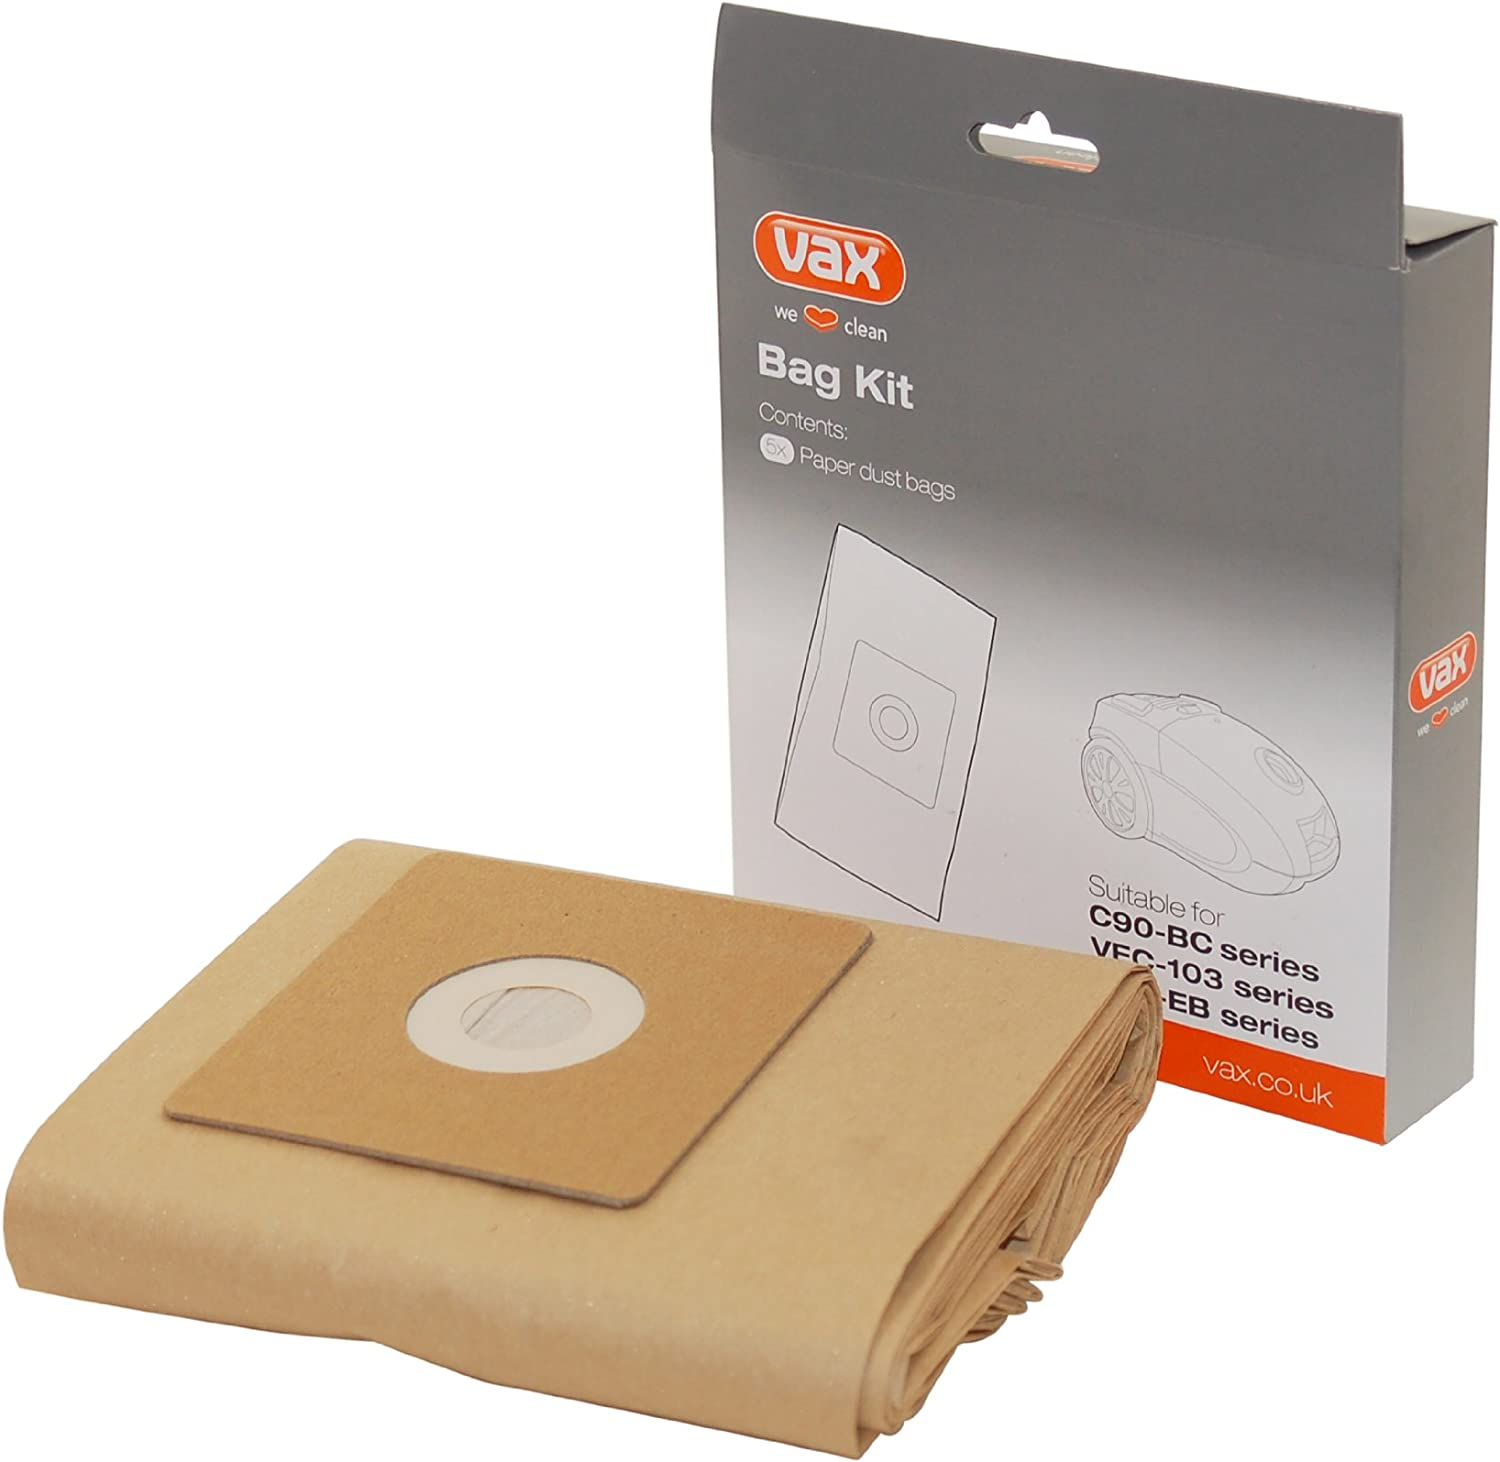 Vax Vacuum Cleaner Paper Dust Bags, Pack of 5. For Essential Cylinder range. Part nunber 1 9 130098 00 1913009800